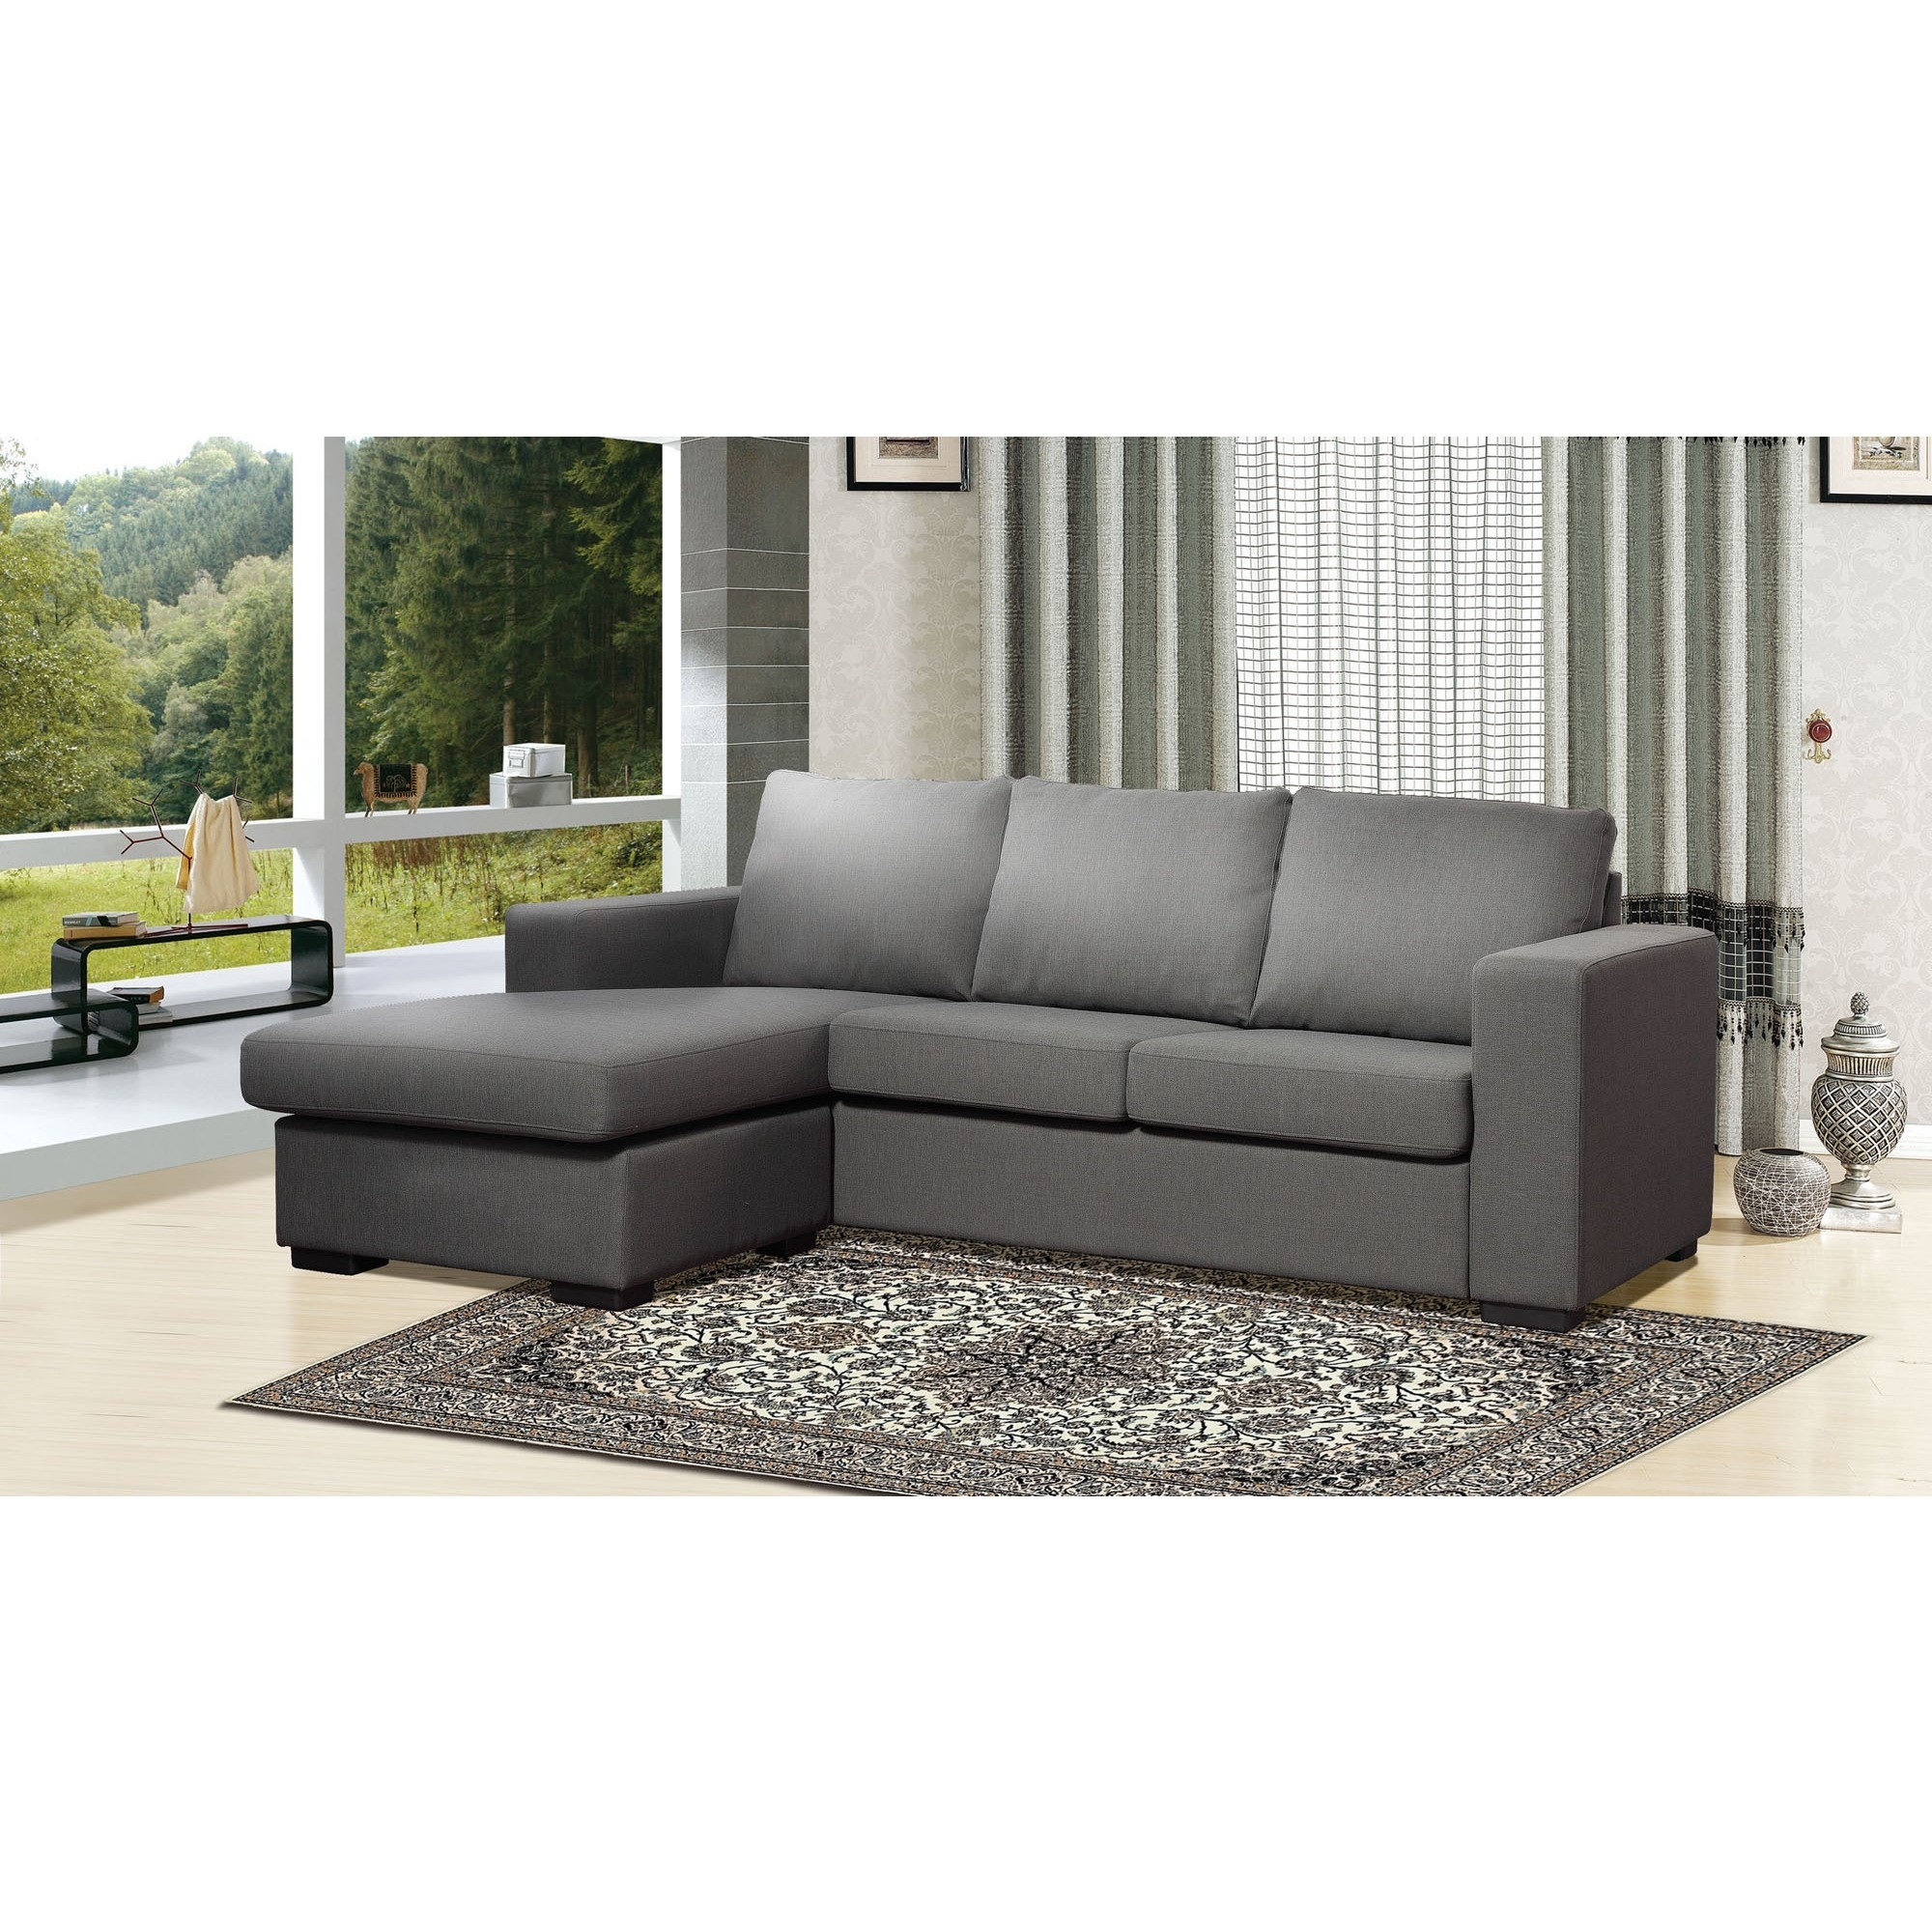 Furniture : Sectional Couch Rug Placement Corner Couch With Cup Pertaining To Sectional Sofas At Bc Canada (Image 6 of 10)